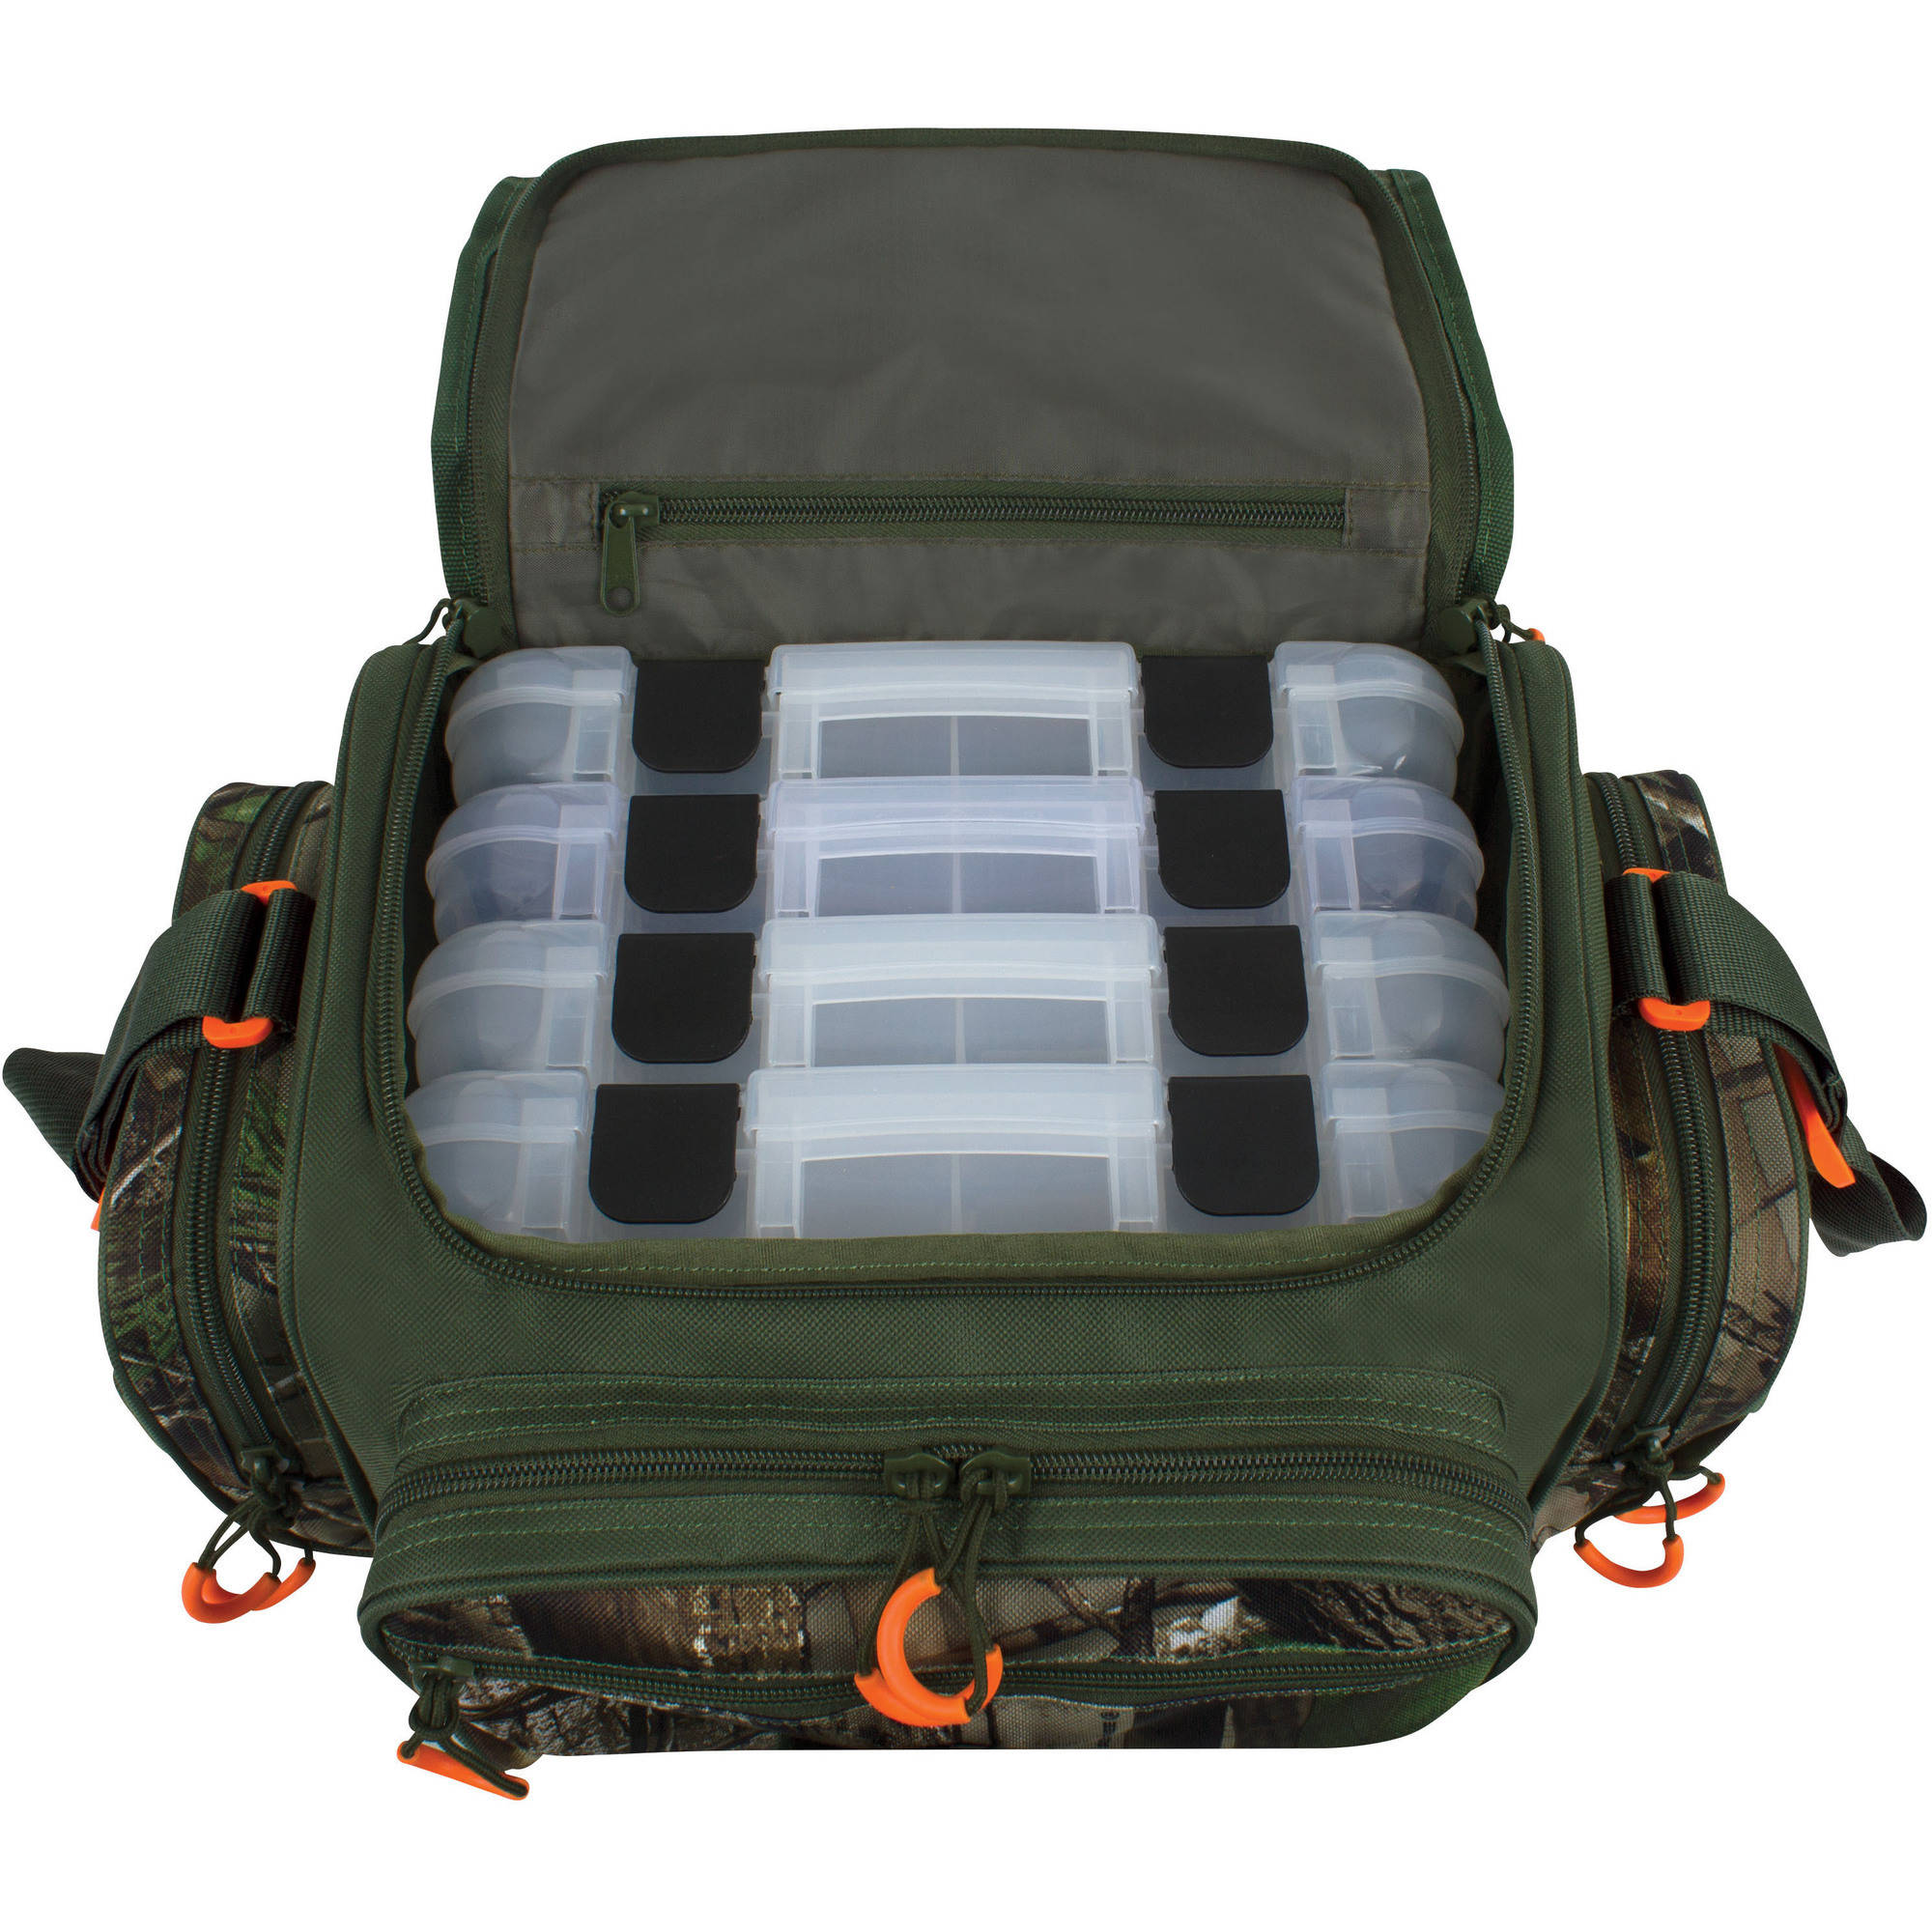 Fishing tackle bag for Fishing gear and tackle